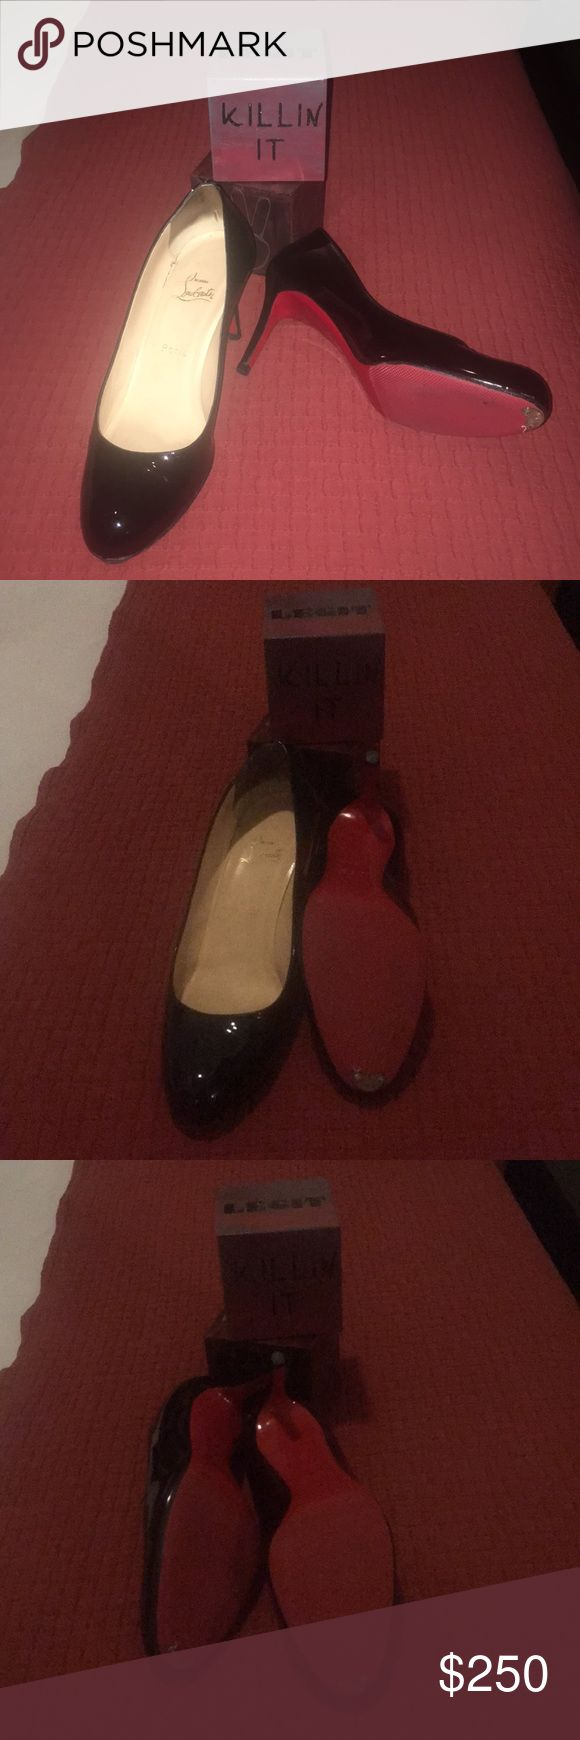 Christian Louboutin shoes Very good- sole protector and taps in place. 3 inch heel. Patent leather Christian Louboutin Shoes Heels